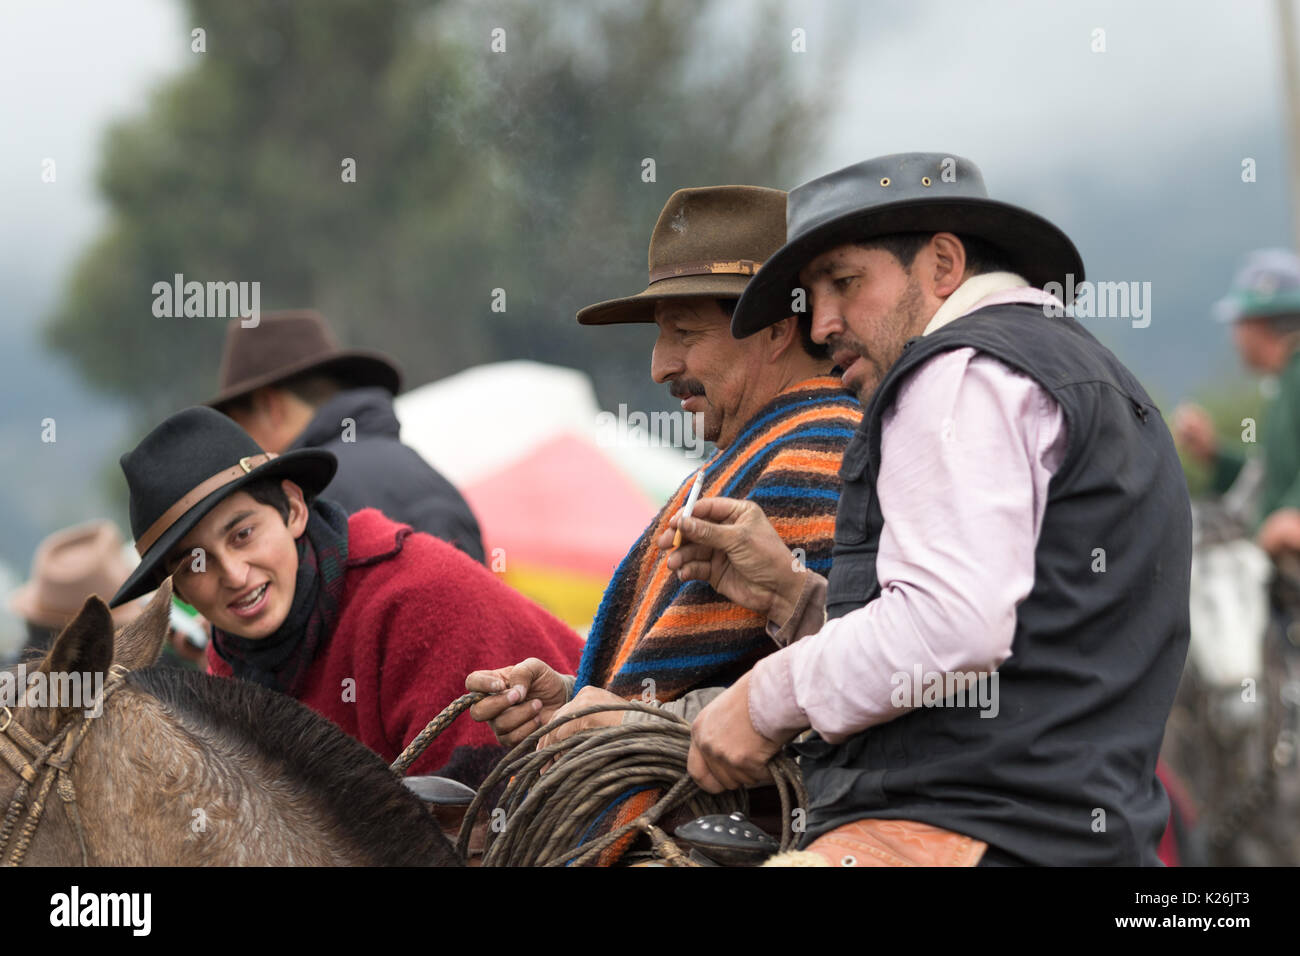 June 10, 2017 Toacazo, Ecuador: cowboys on their horse having a talk at a rural rodeo in the Andes - Stock Image